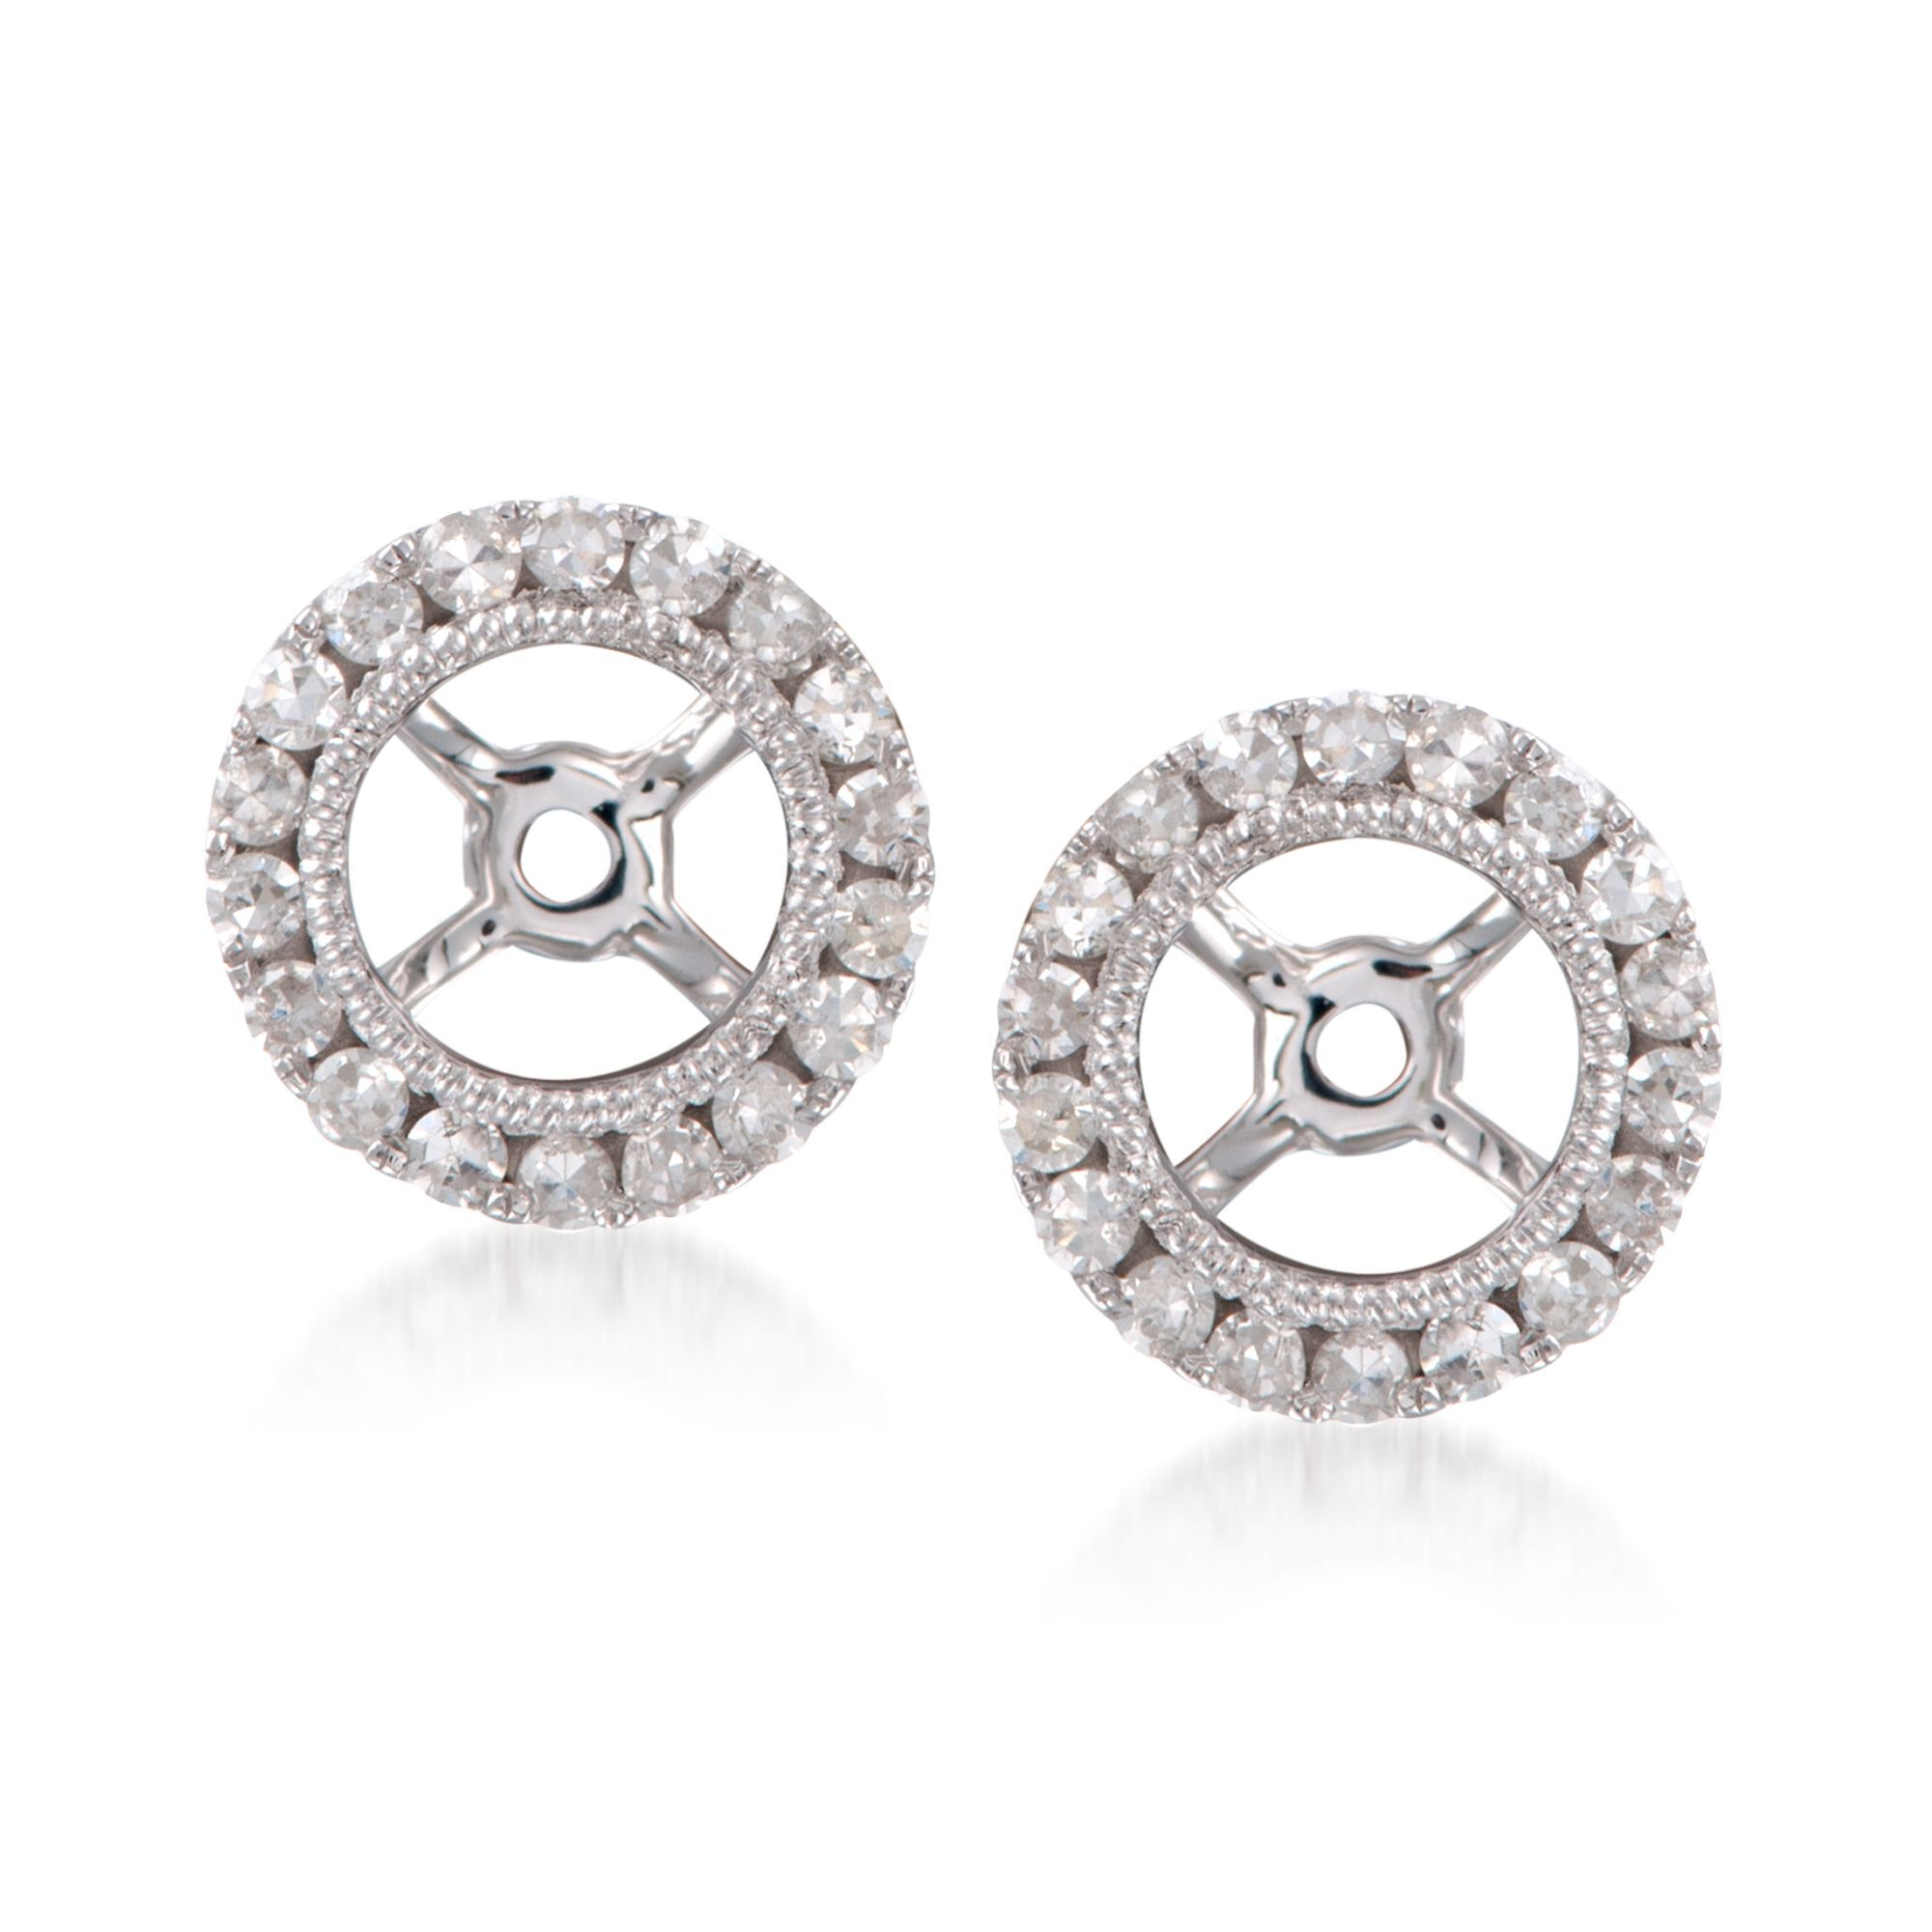 Ross Simons Diamond Earrings Ross Simons Diamond Earrings